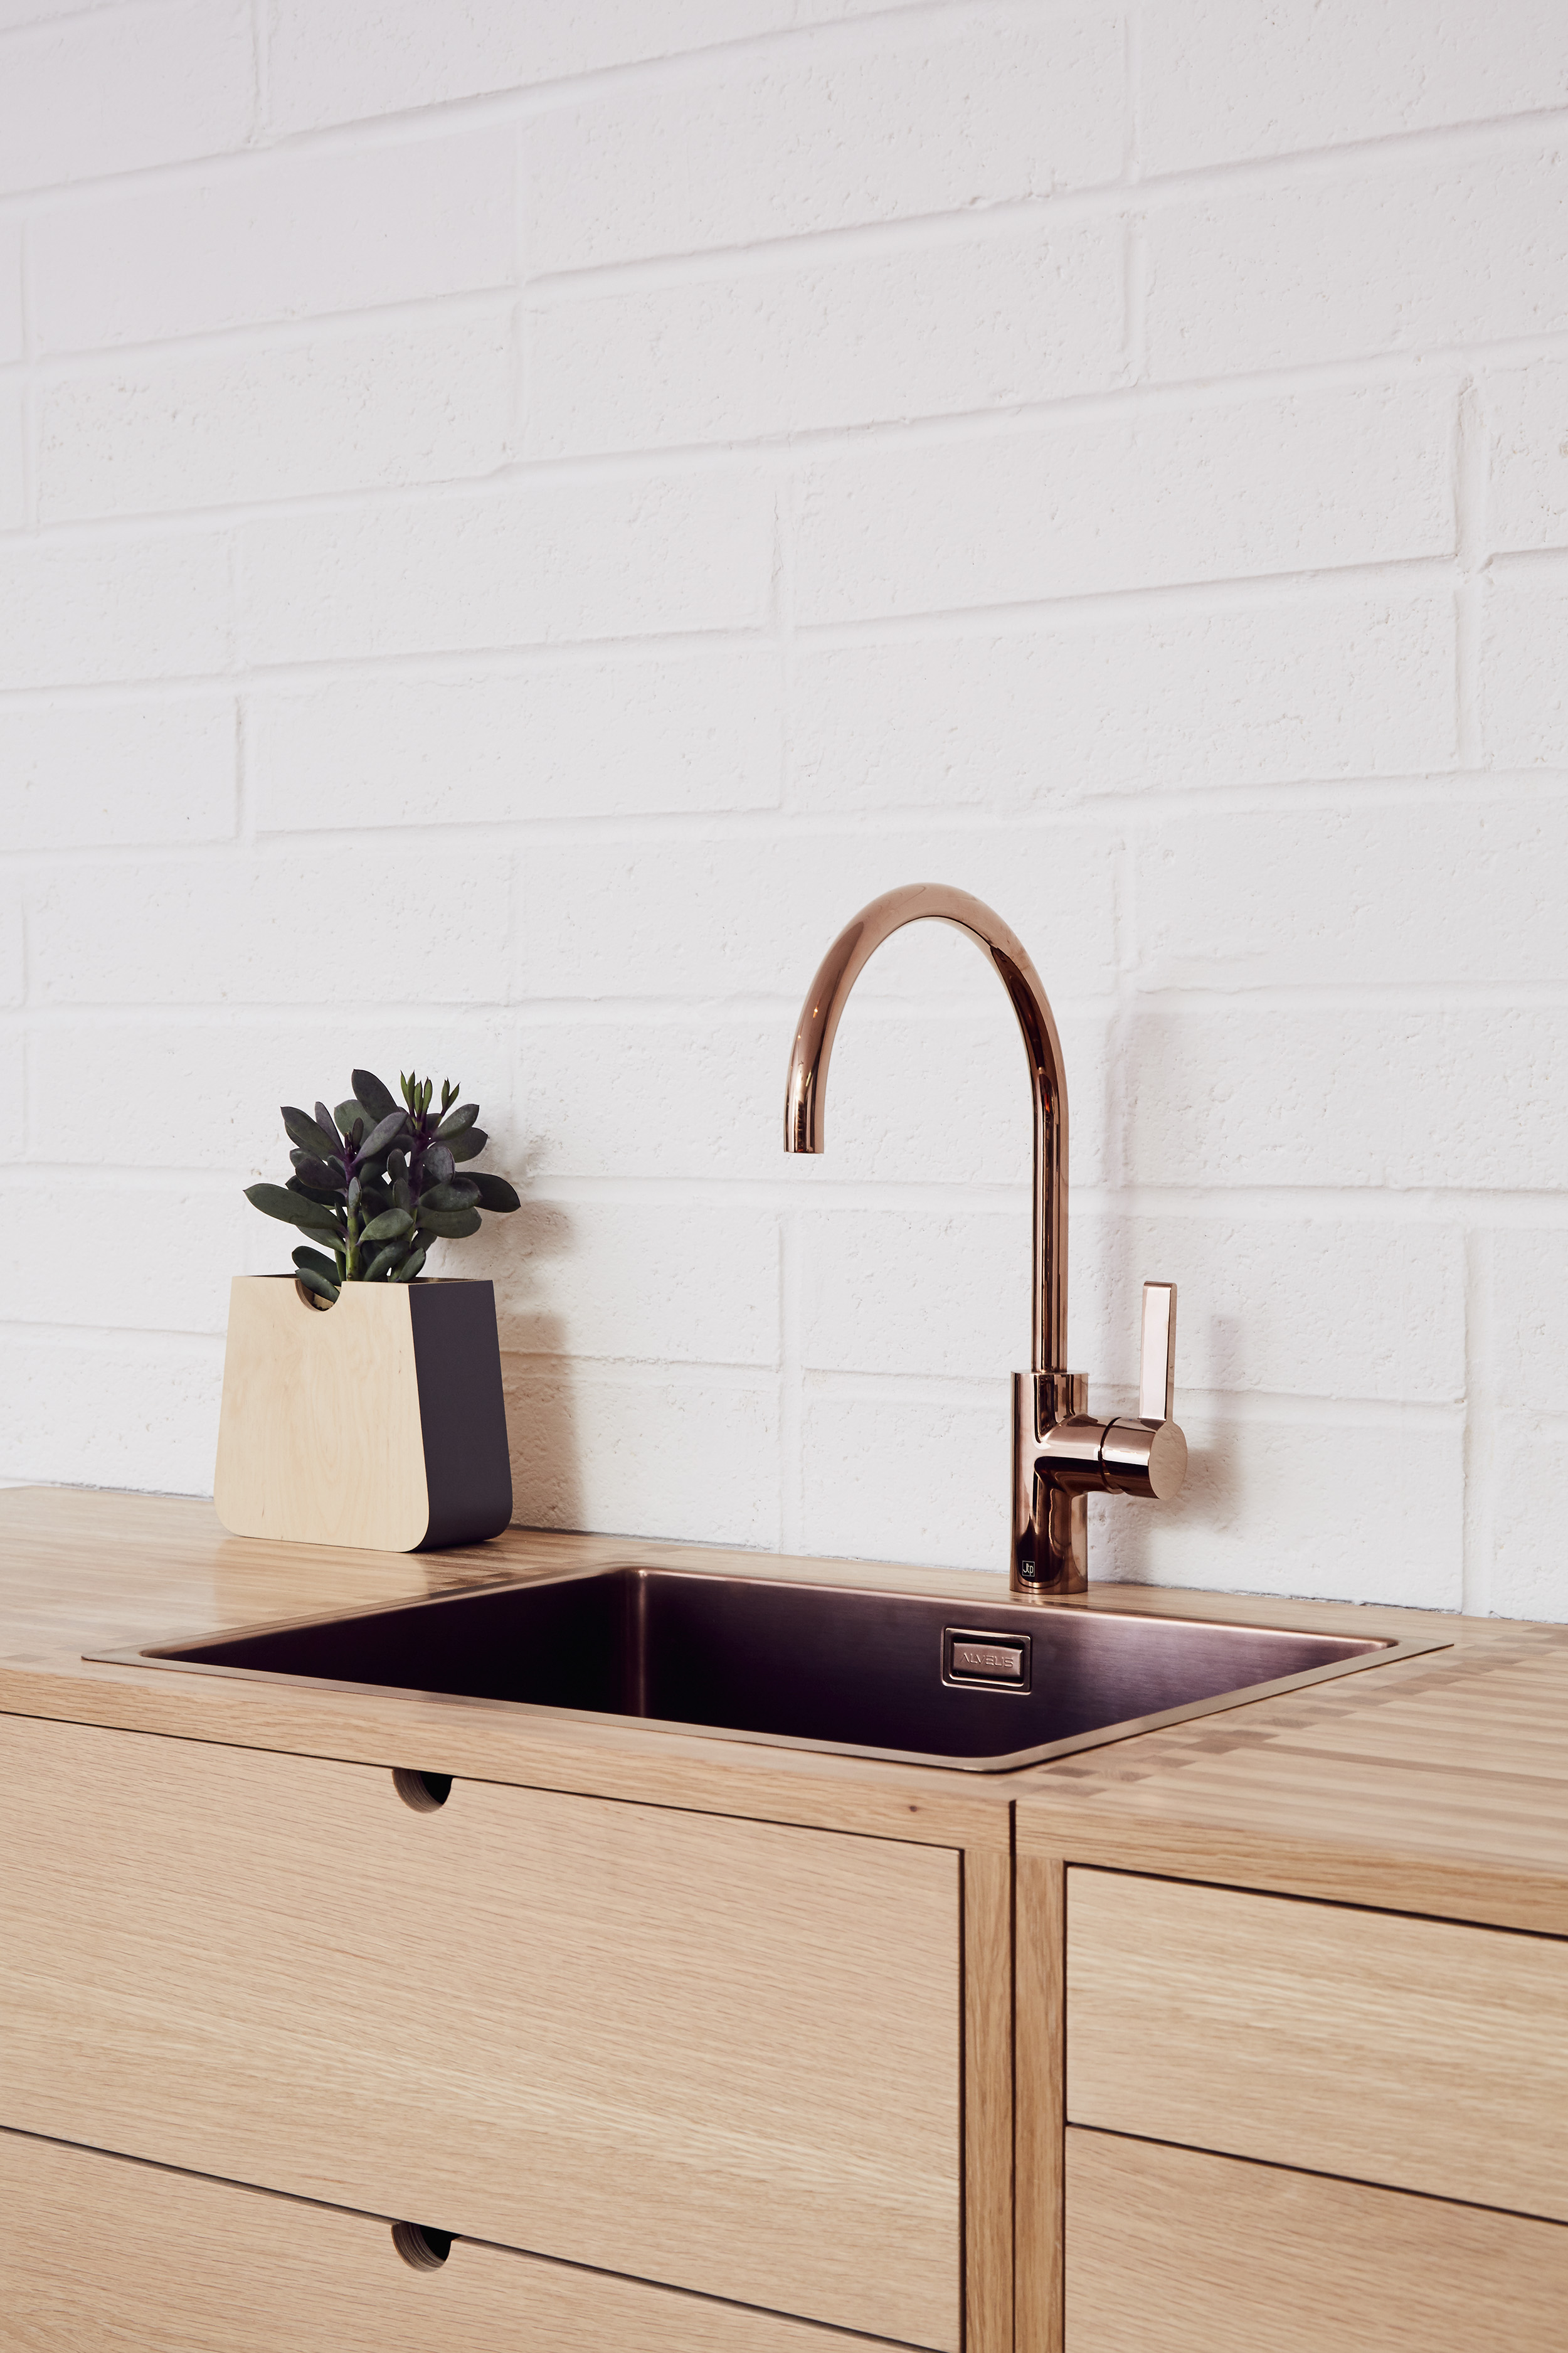 A close up of the unusual copper sink and tap